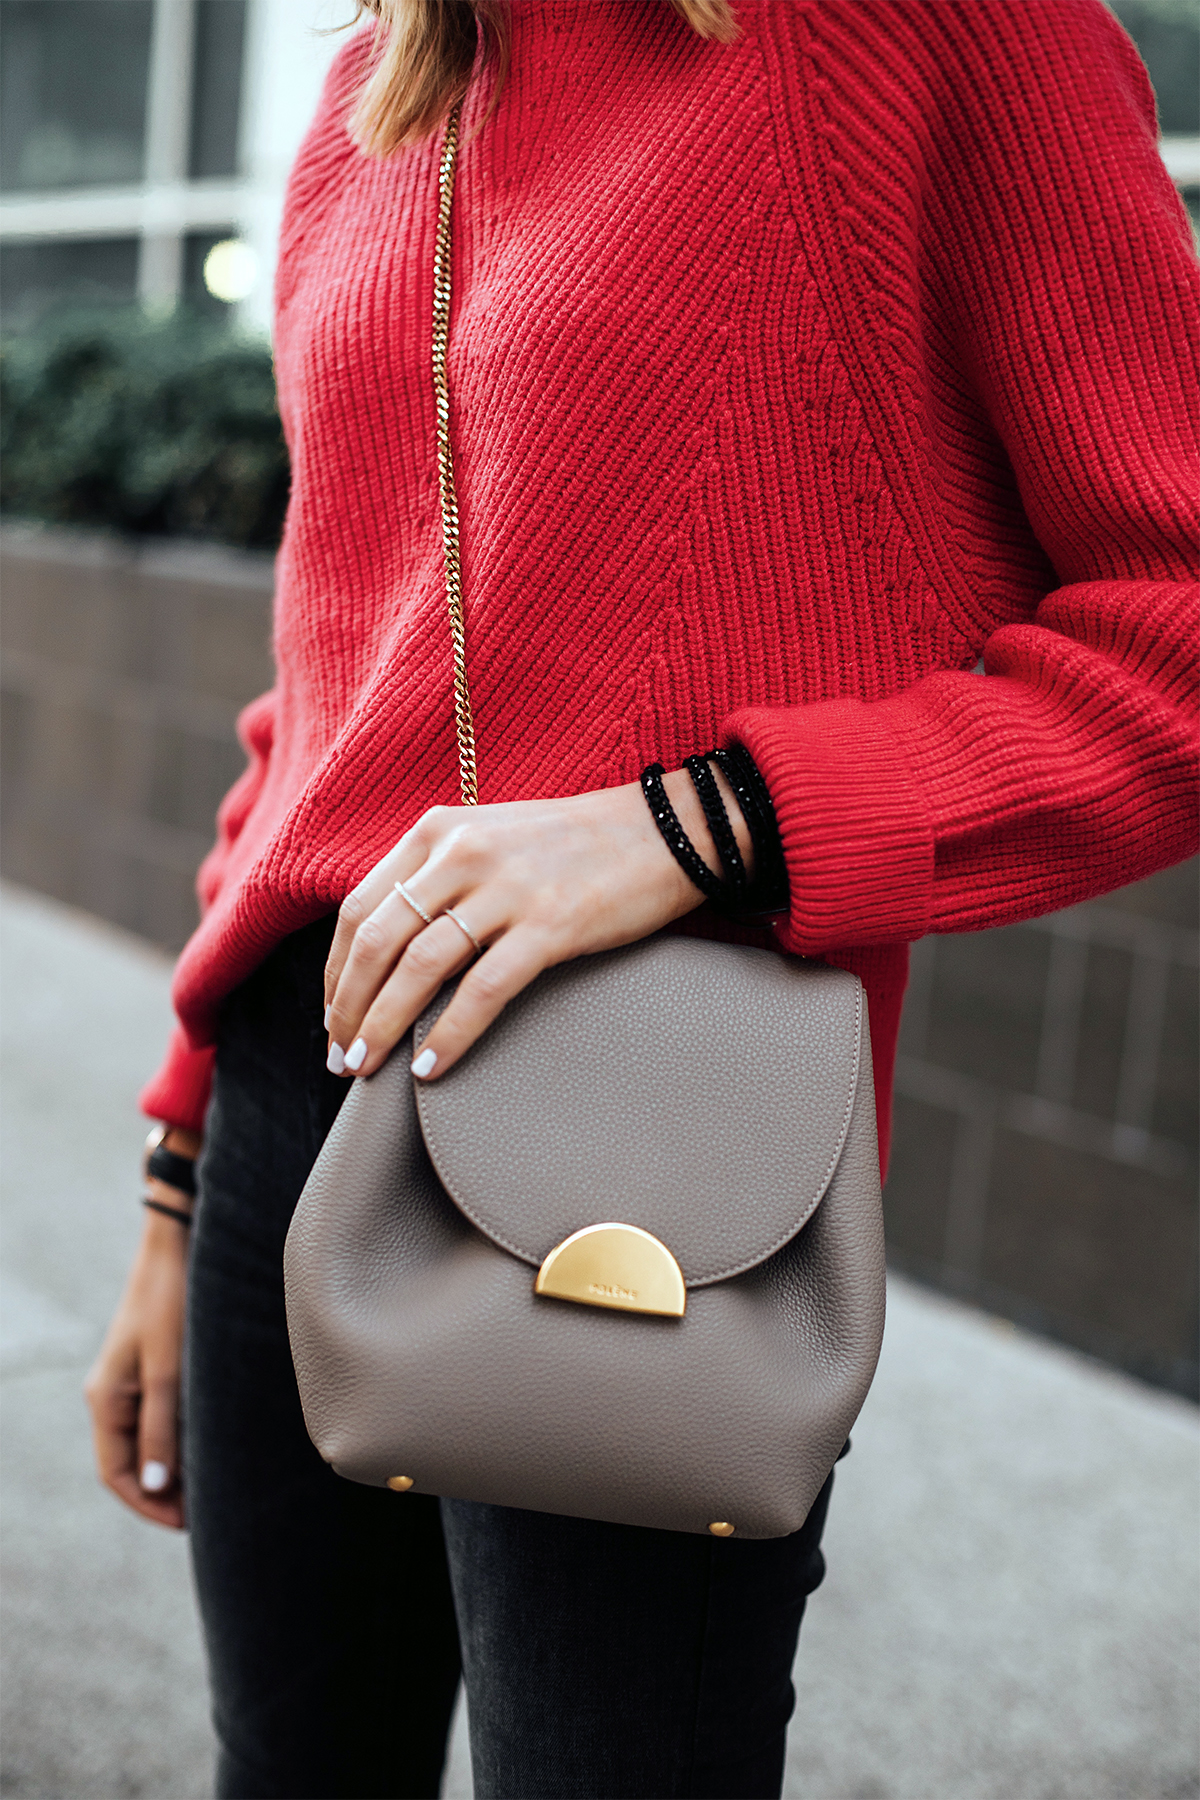 Woman Wearing AllSaints Red Sweater Polene Taupe Crossbody Handbag Victoria Emerson Beaded Black Wrap Bracelet Fashion Jackson San Diego Fashion Blogger Street Style